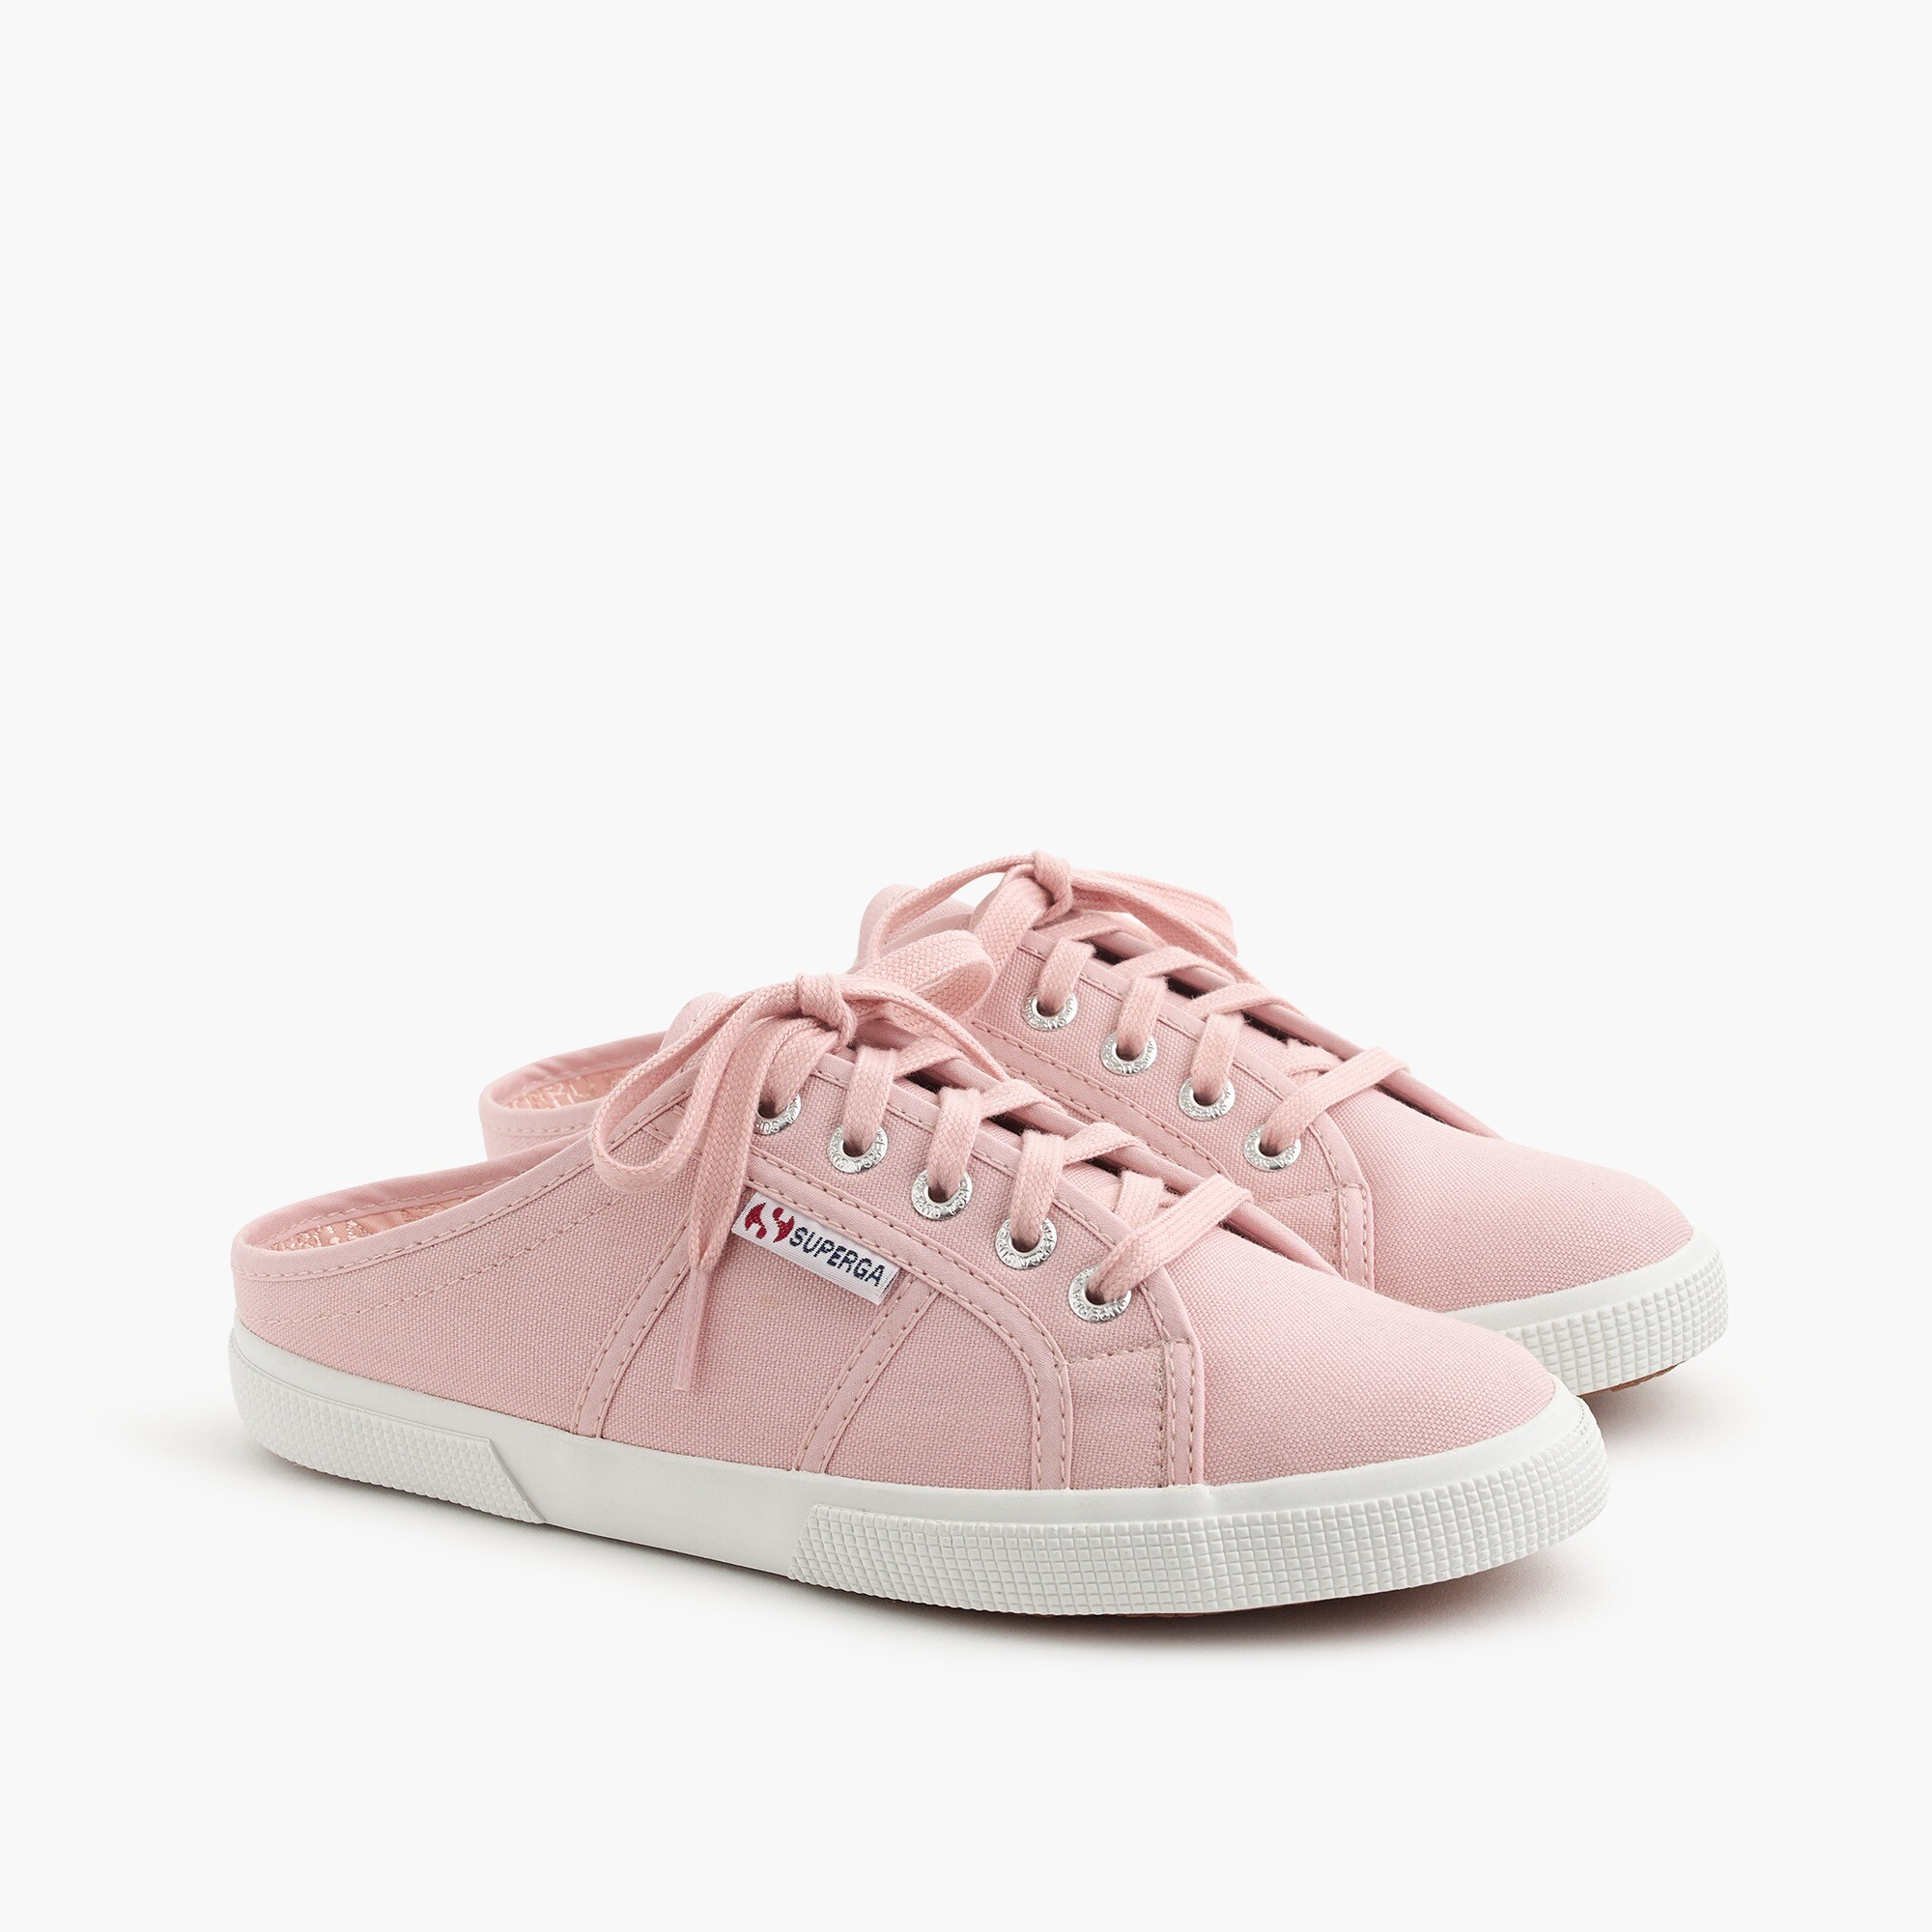 Superga® 2288 Mule sneakers women j.crew in good company c